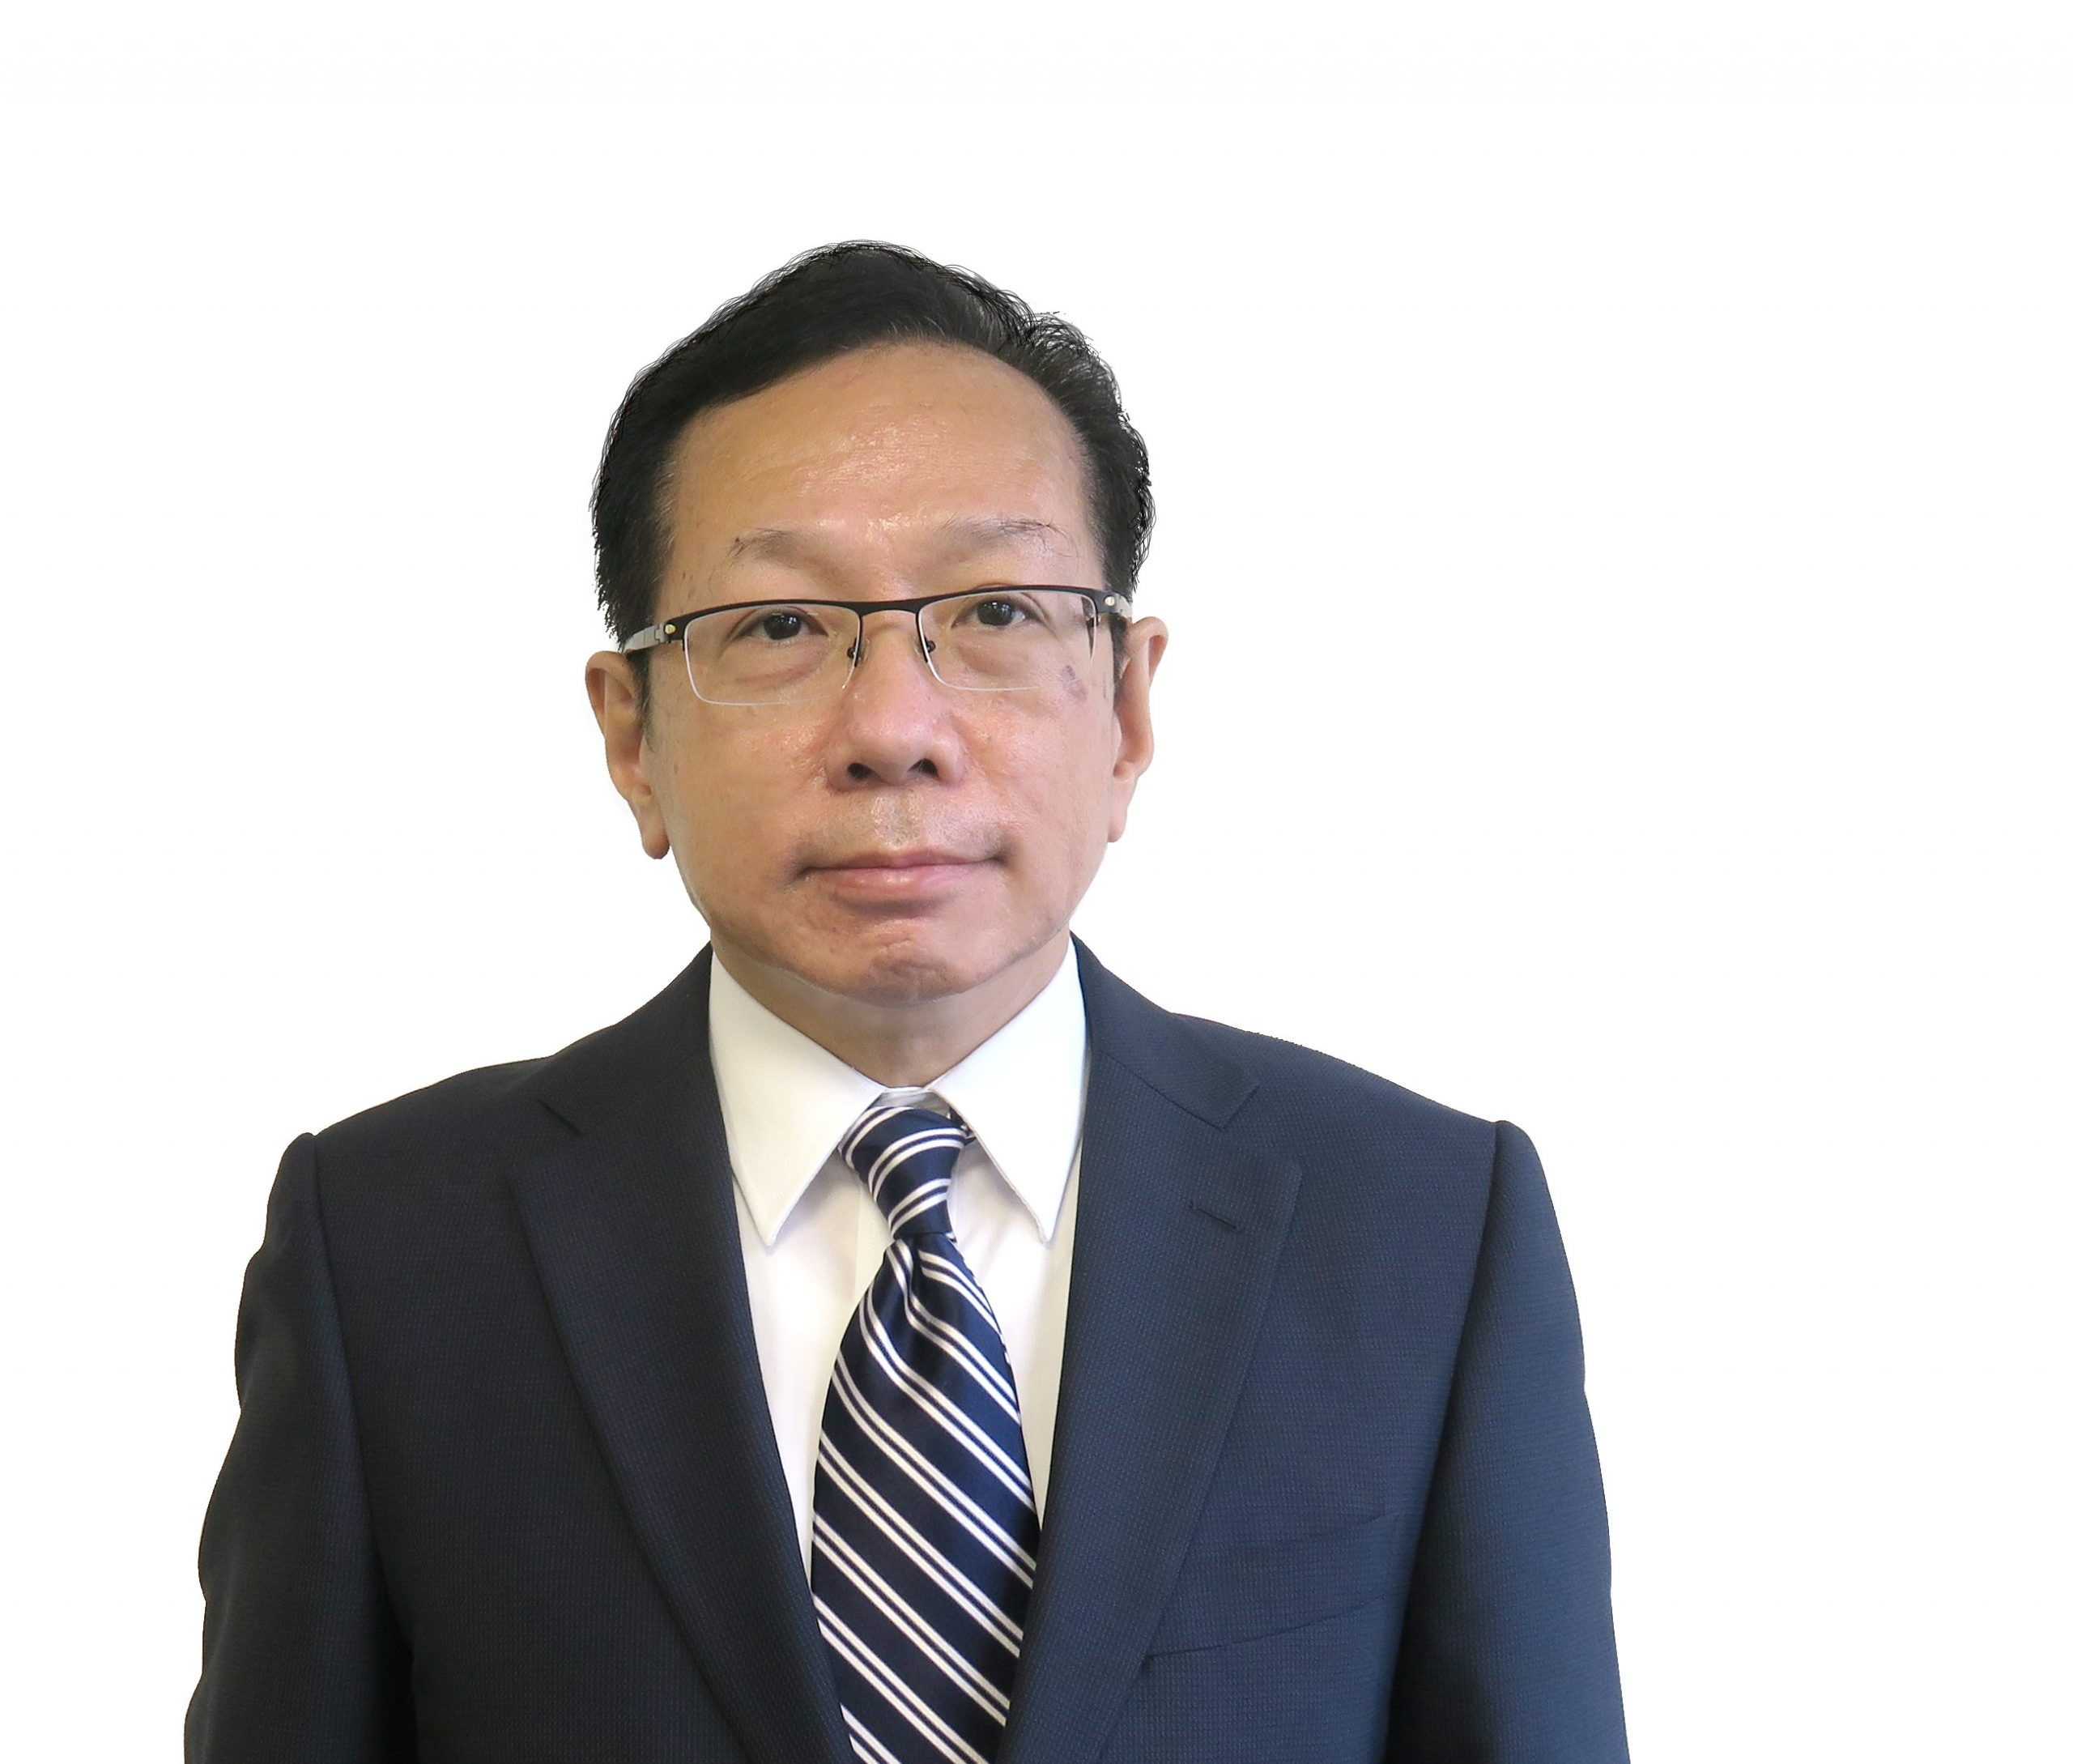 Montieth SPRG hires a new Director for the APAC region